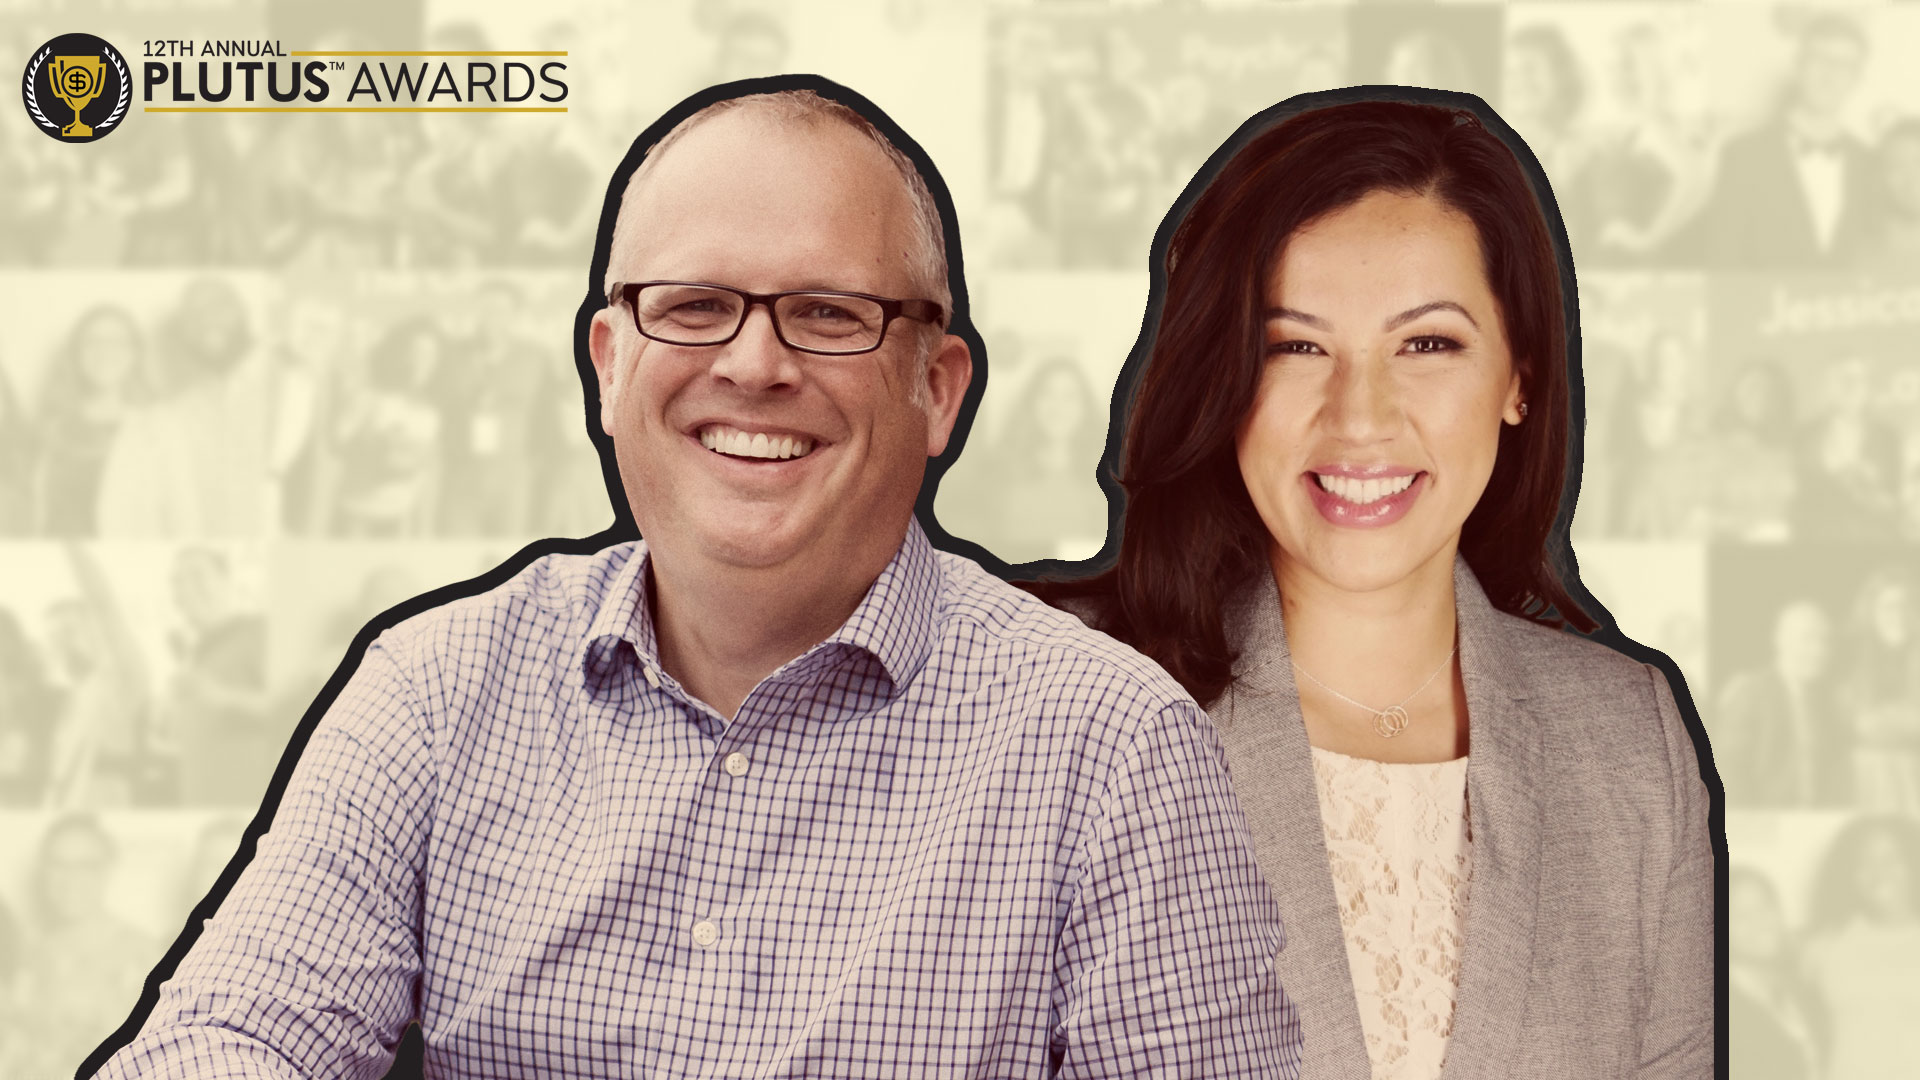 Joe Saul-Sehy and Natalie Torres-Haddad to Co-Host the 12th Annual Awards Ceremony